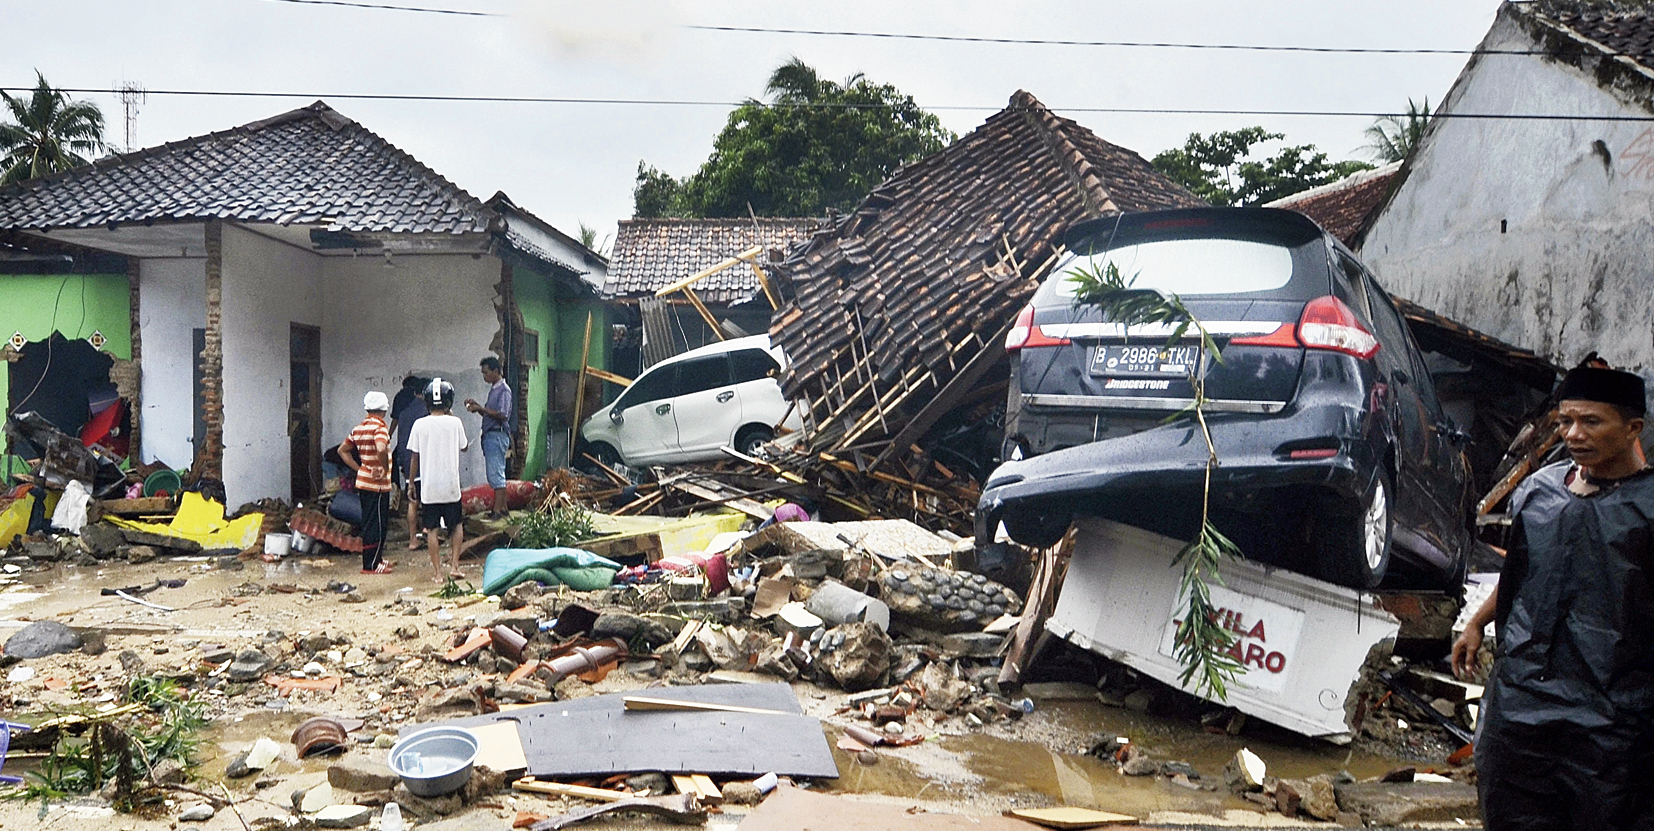 Houses and cars lie in a mangled heap in the aftermath of the tsunami at Carita, Indonesia, on Sunday.